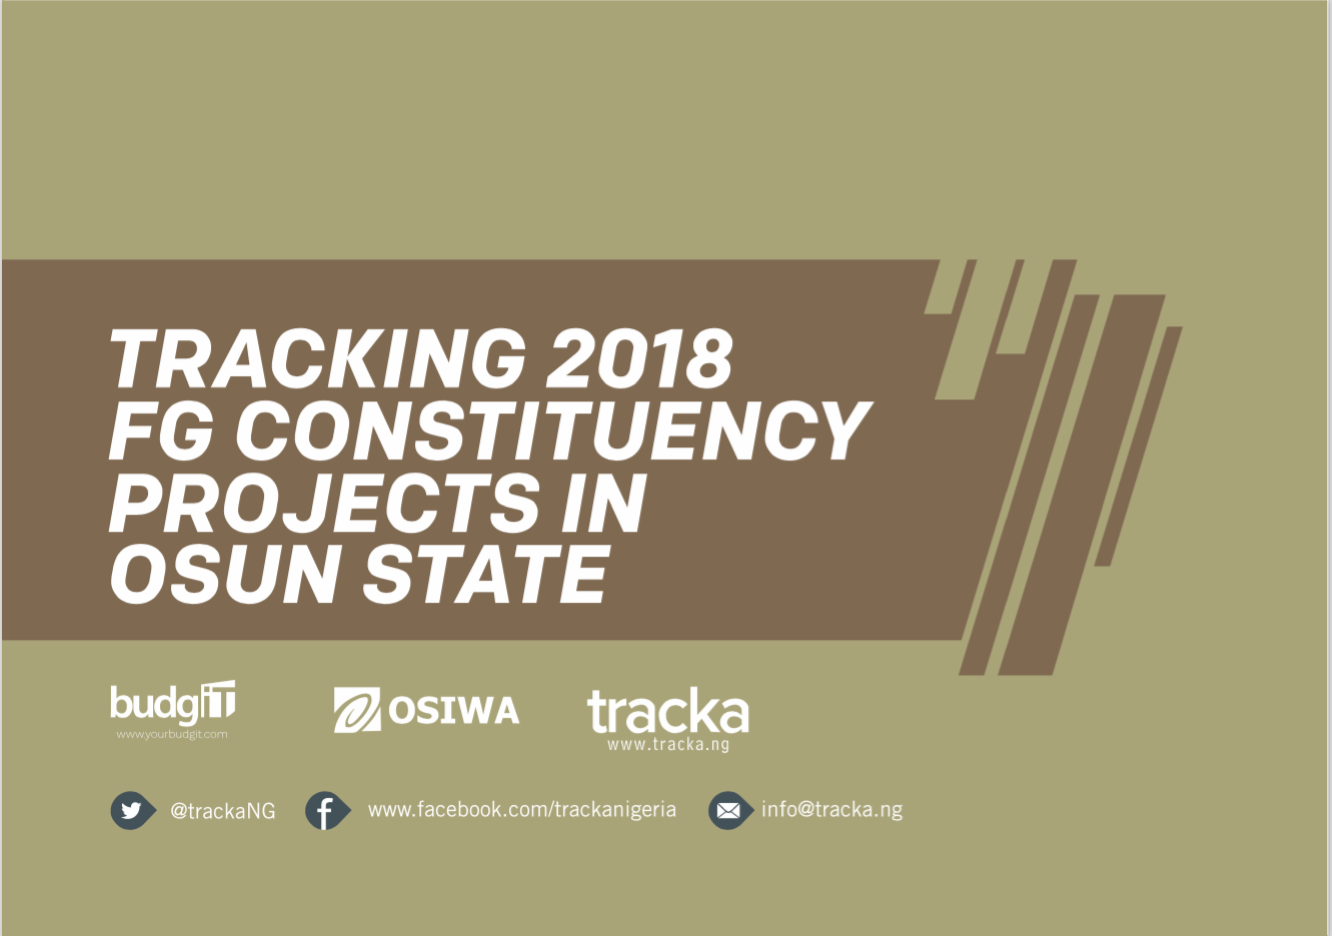 2018 FG Constituency Projects Osun State